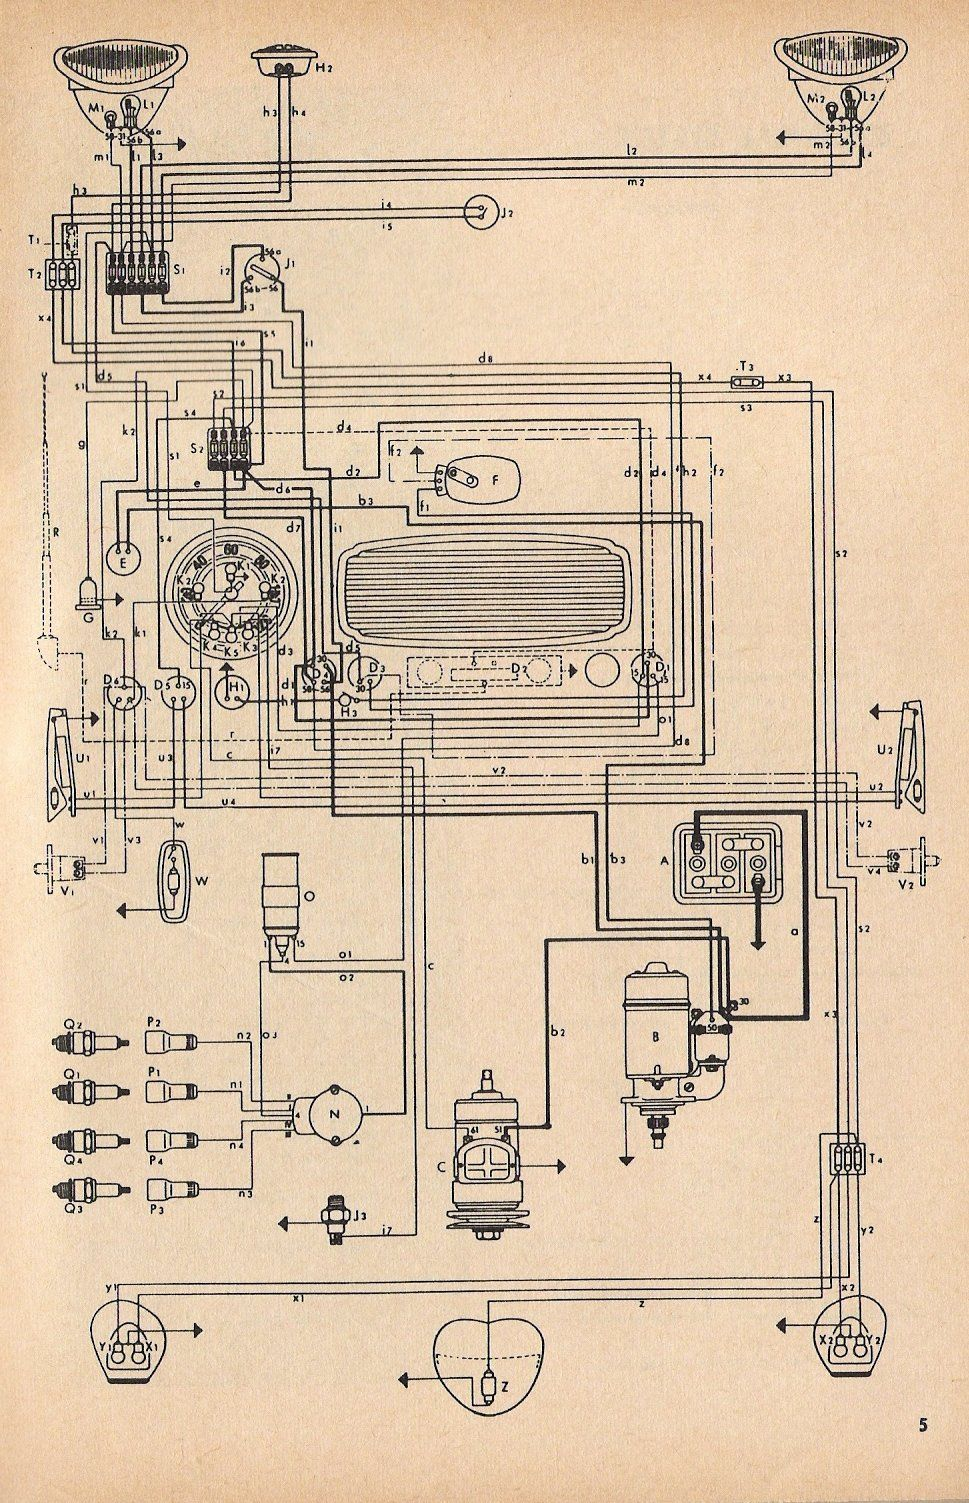 73aa9ad606b8bf00f62fd44f769ec35c electrical wiring diagrams beetle 1971 electrical wiring Volkswagen Type 2 Wiring Harness at gsmx.co